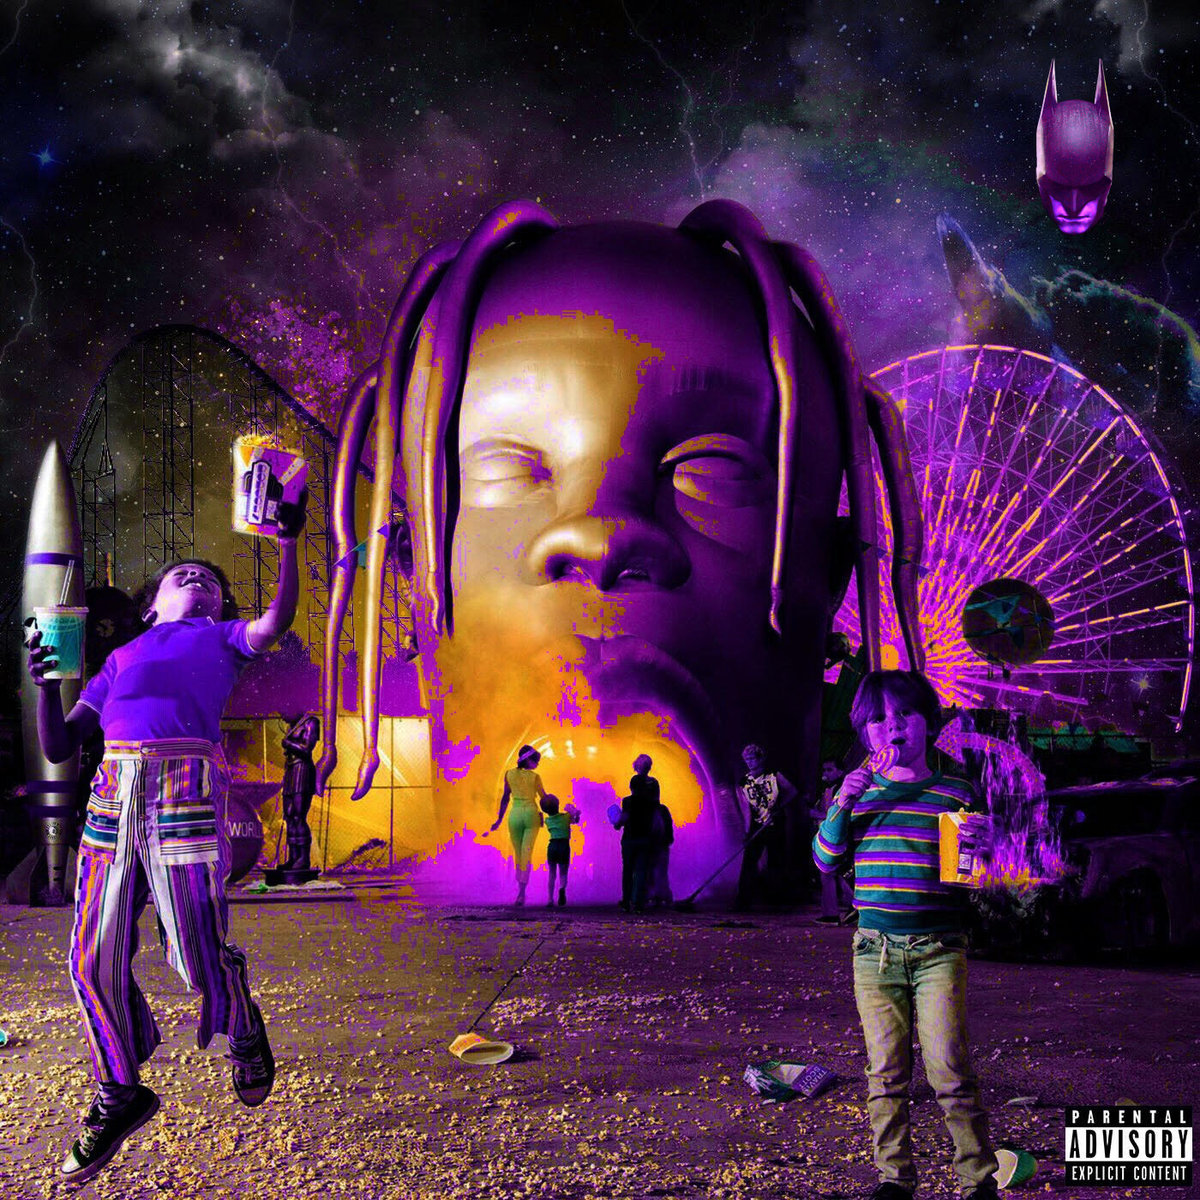 Download Mp3 Travis Scott Sicko Mode: SICKO MODE (Chopped & Screwed)